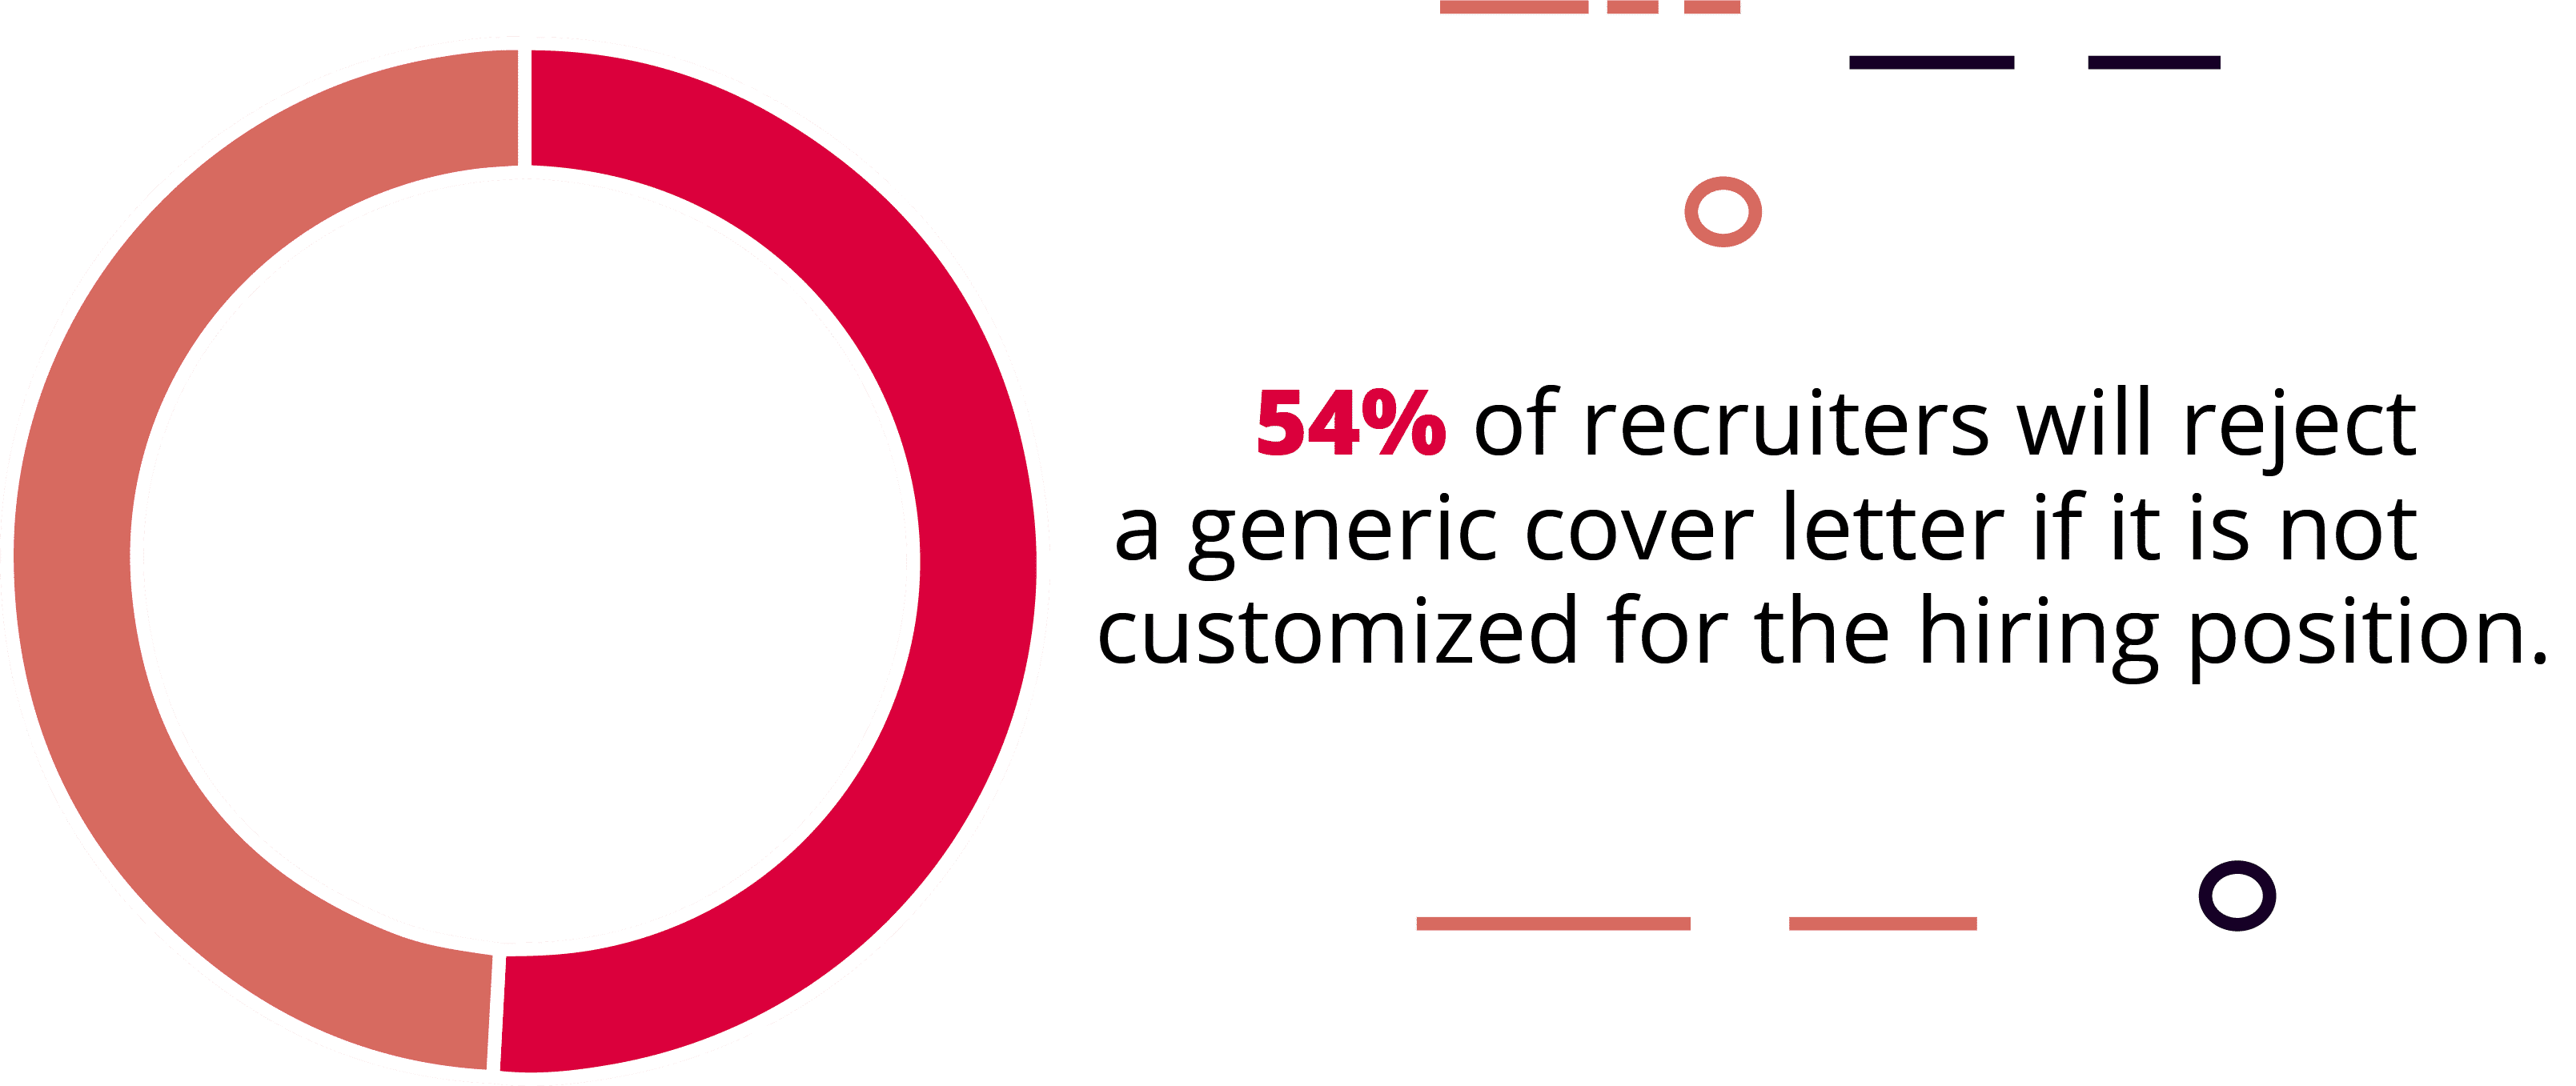 54% of Hiring Managers Will Reject a Generic Cover Letter That Is Not Customized for the Position